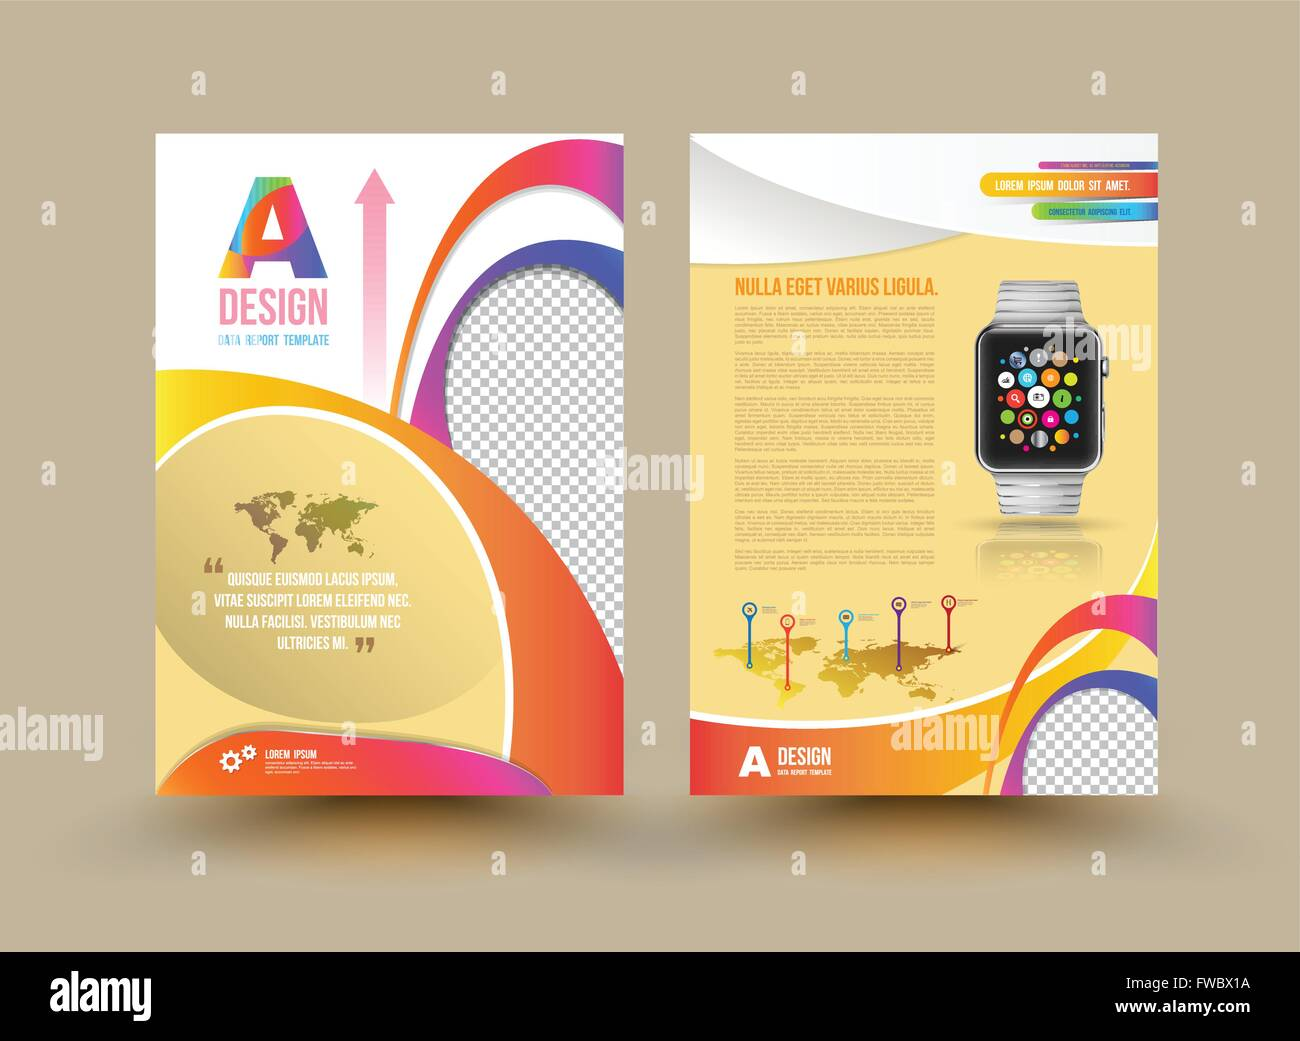 Vector Brochure Template Design With Smart Watch Business Graphics - Brochures template